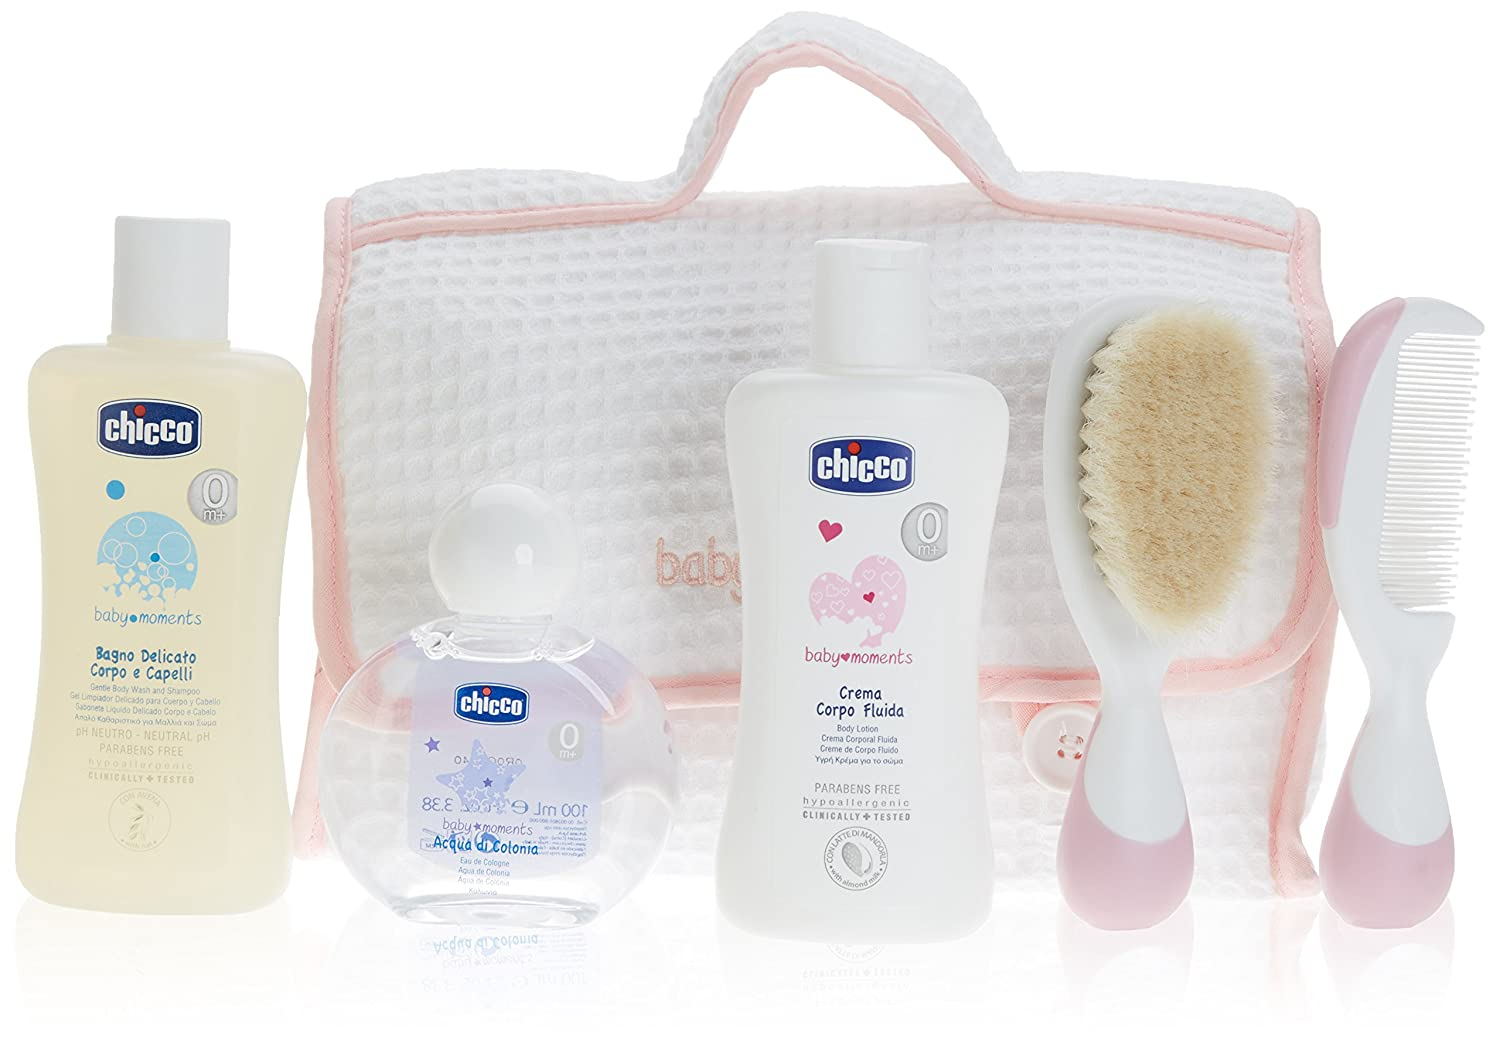 Bagno Chicco : Chicco baby moments beauty all you need geschenkbox rosa: amazon.de